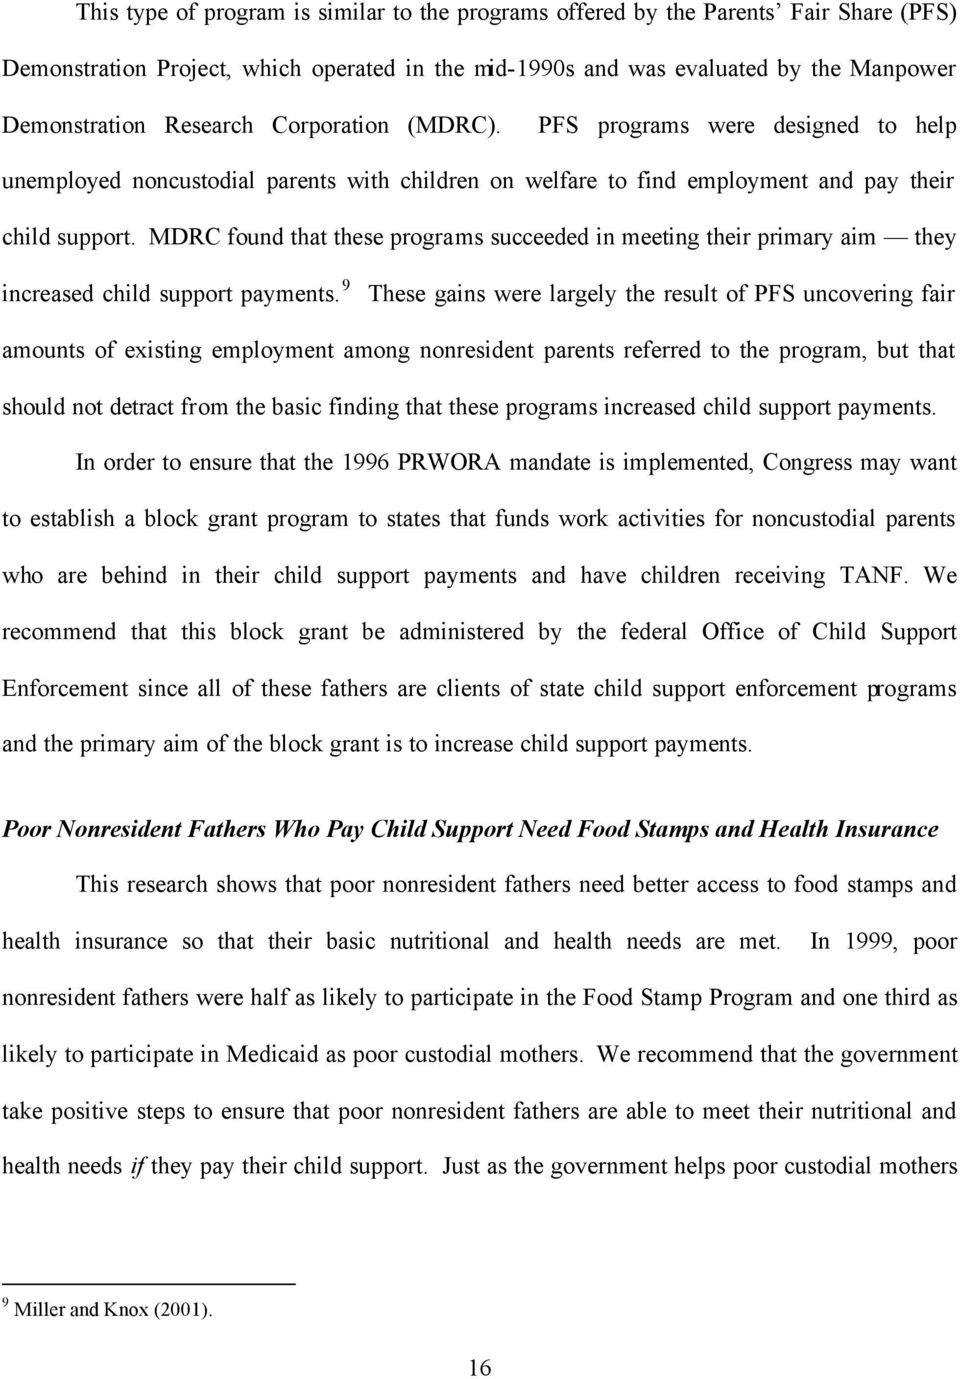 MDRC found that these programs succeeded in meeting their primary aim they increased child support payments.